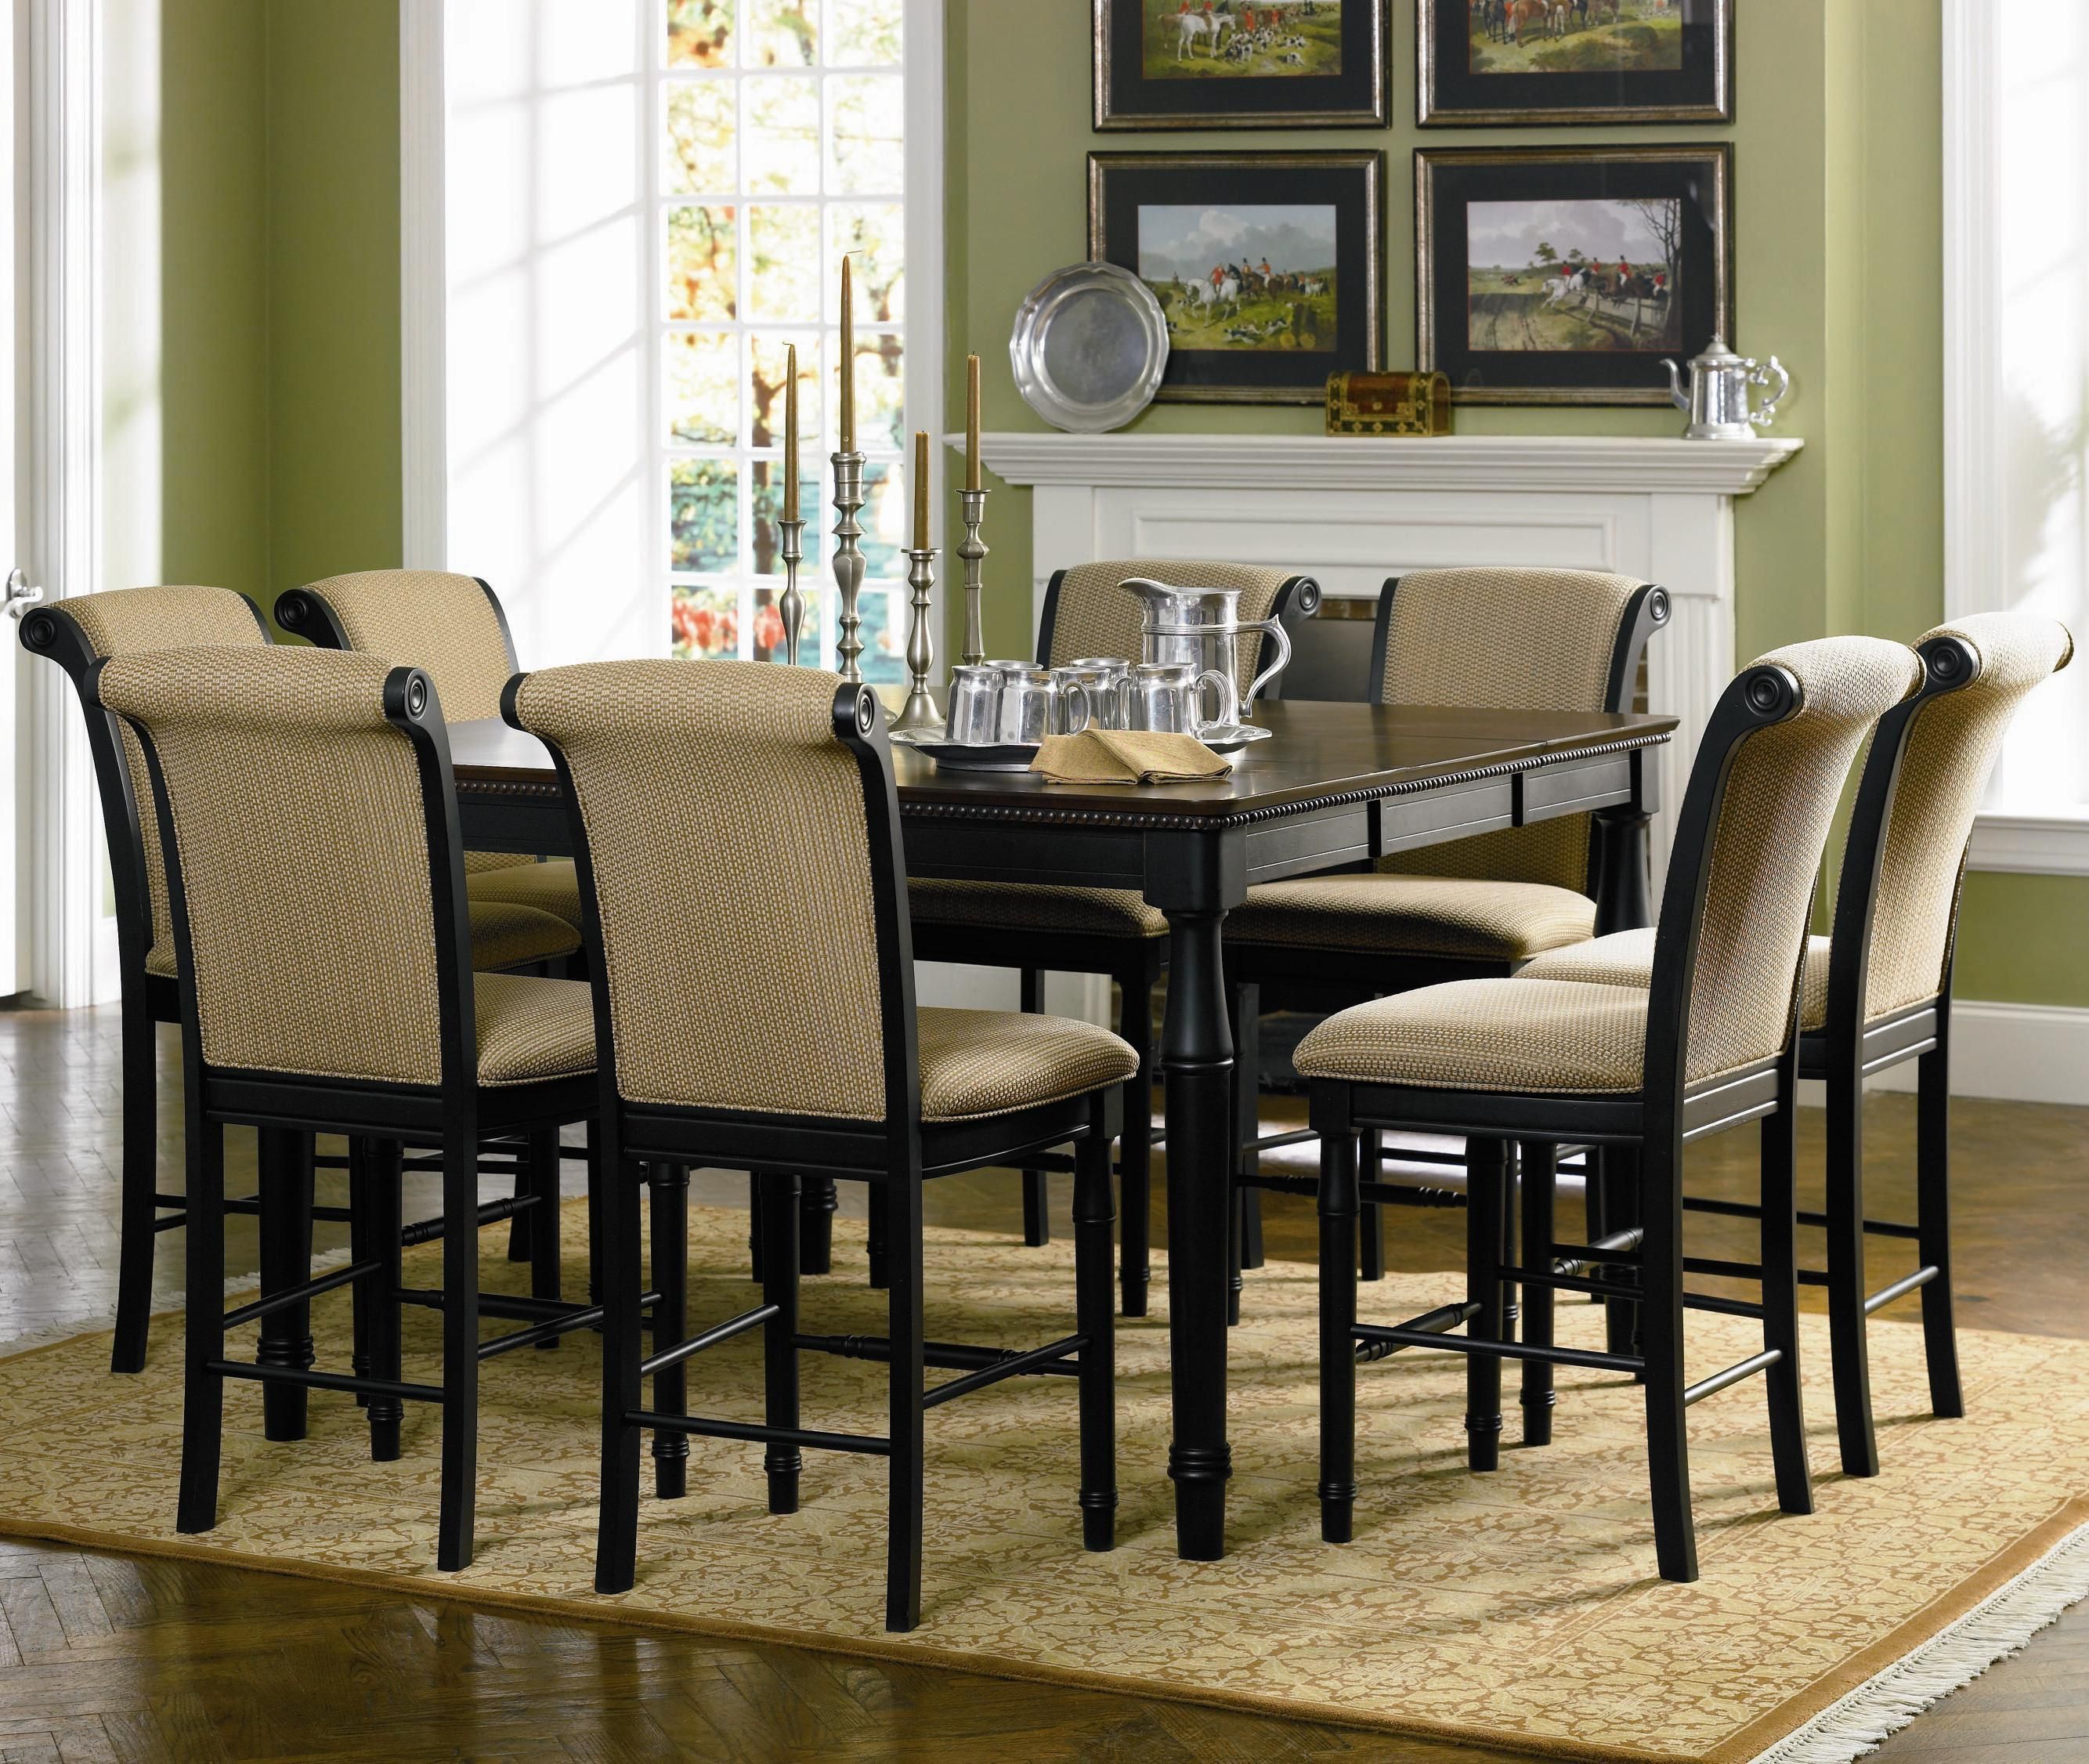 Cabrillo 9 Piece Counter Height Dining Setcoaster  Counter Extraordinary Dining Room Pub Table Sets Decorating Inspiration